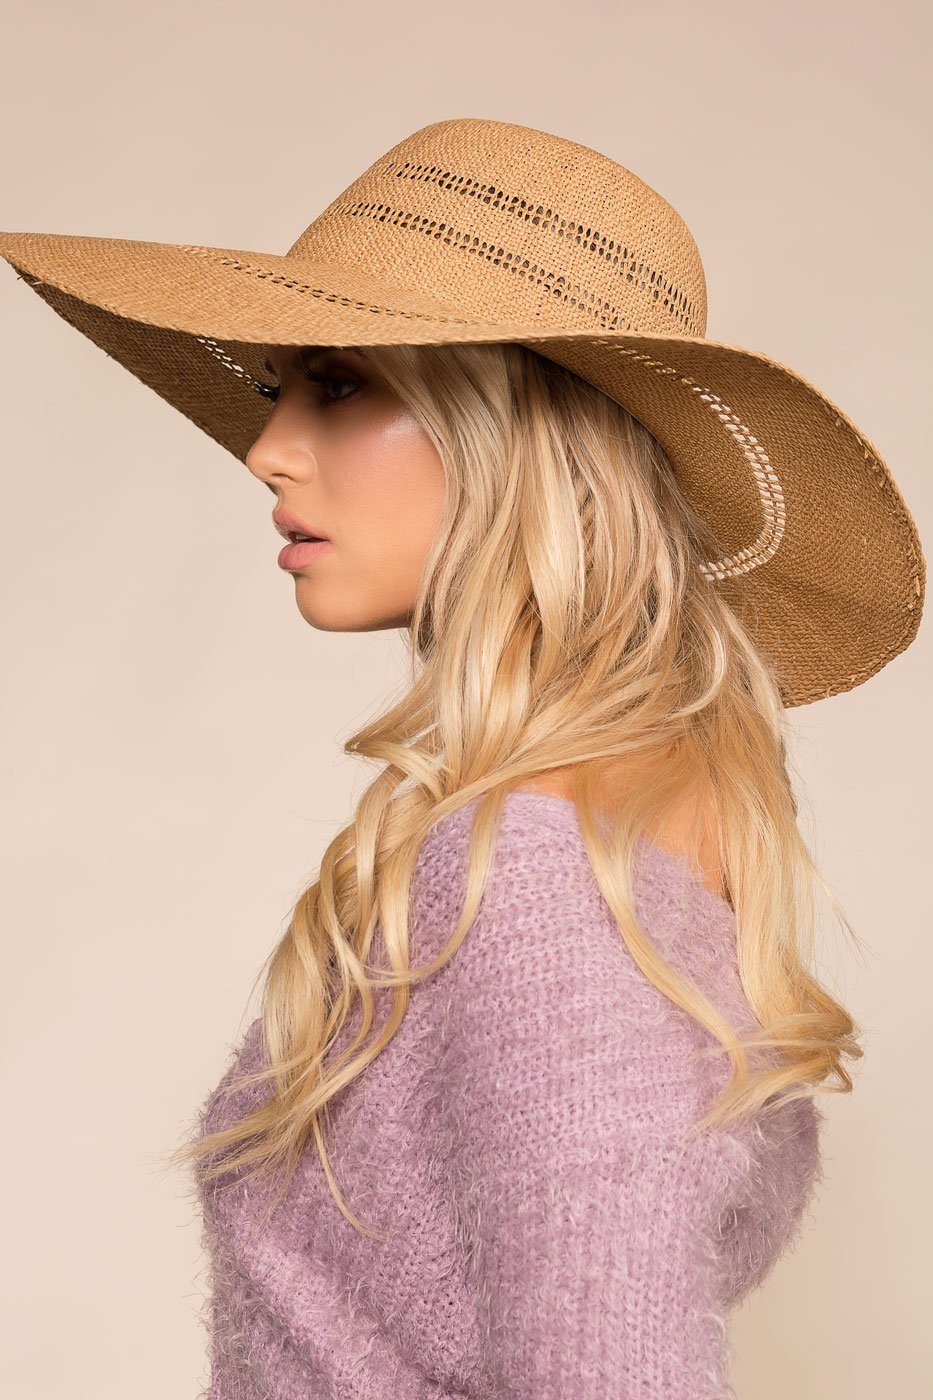 Woven Sun Hat with Floppy Brim